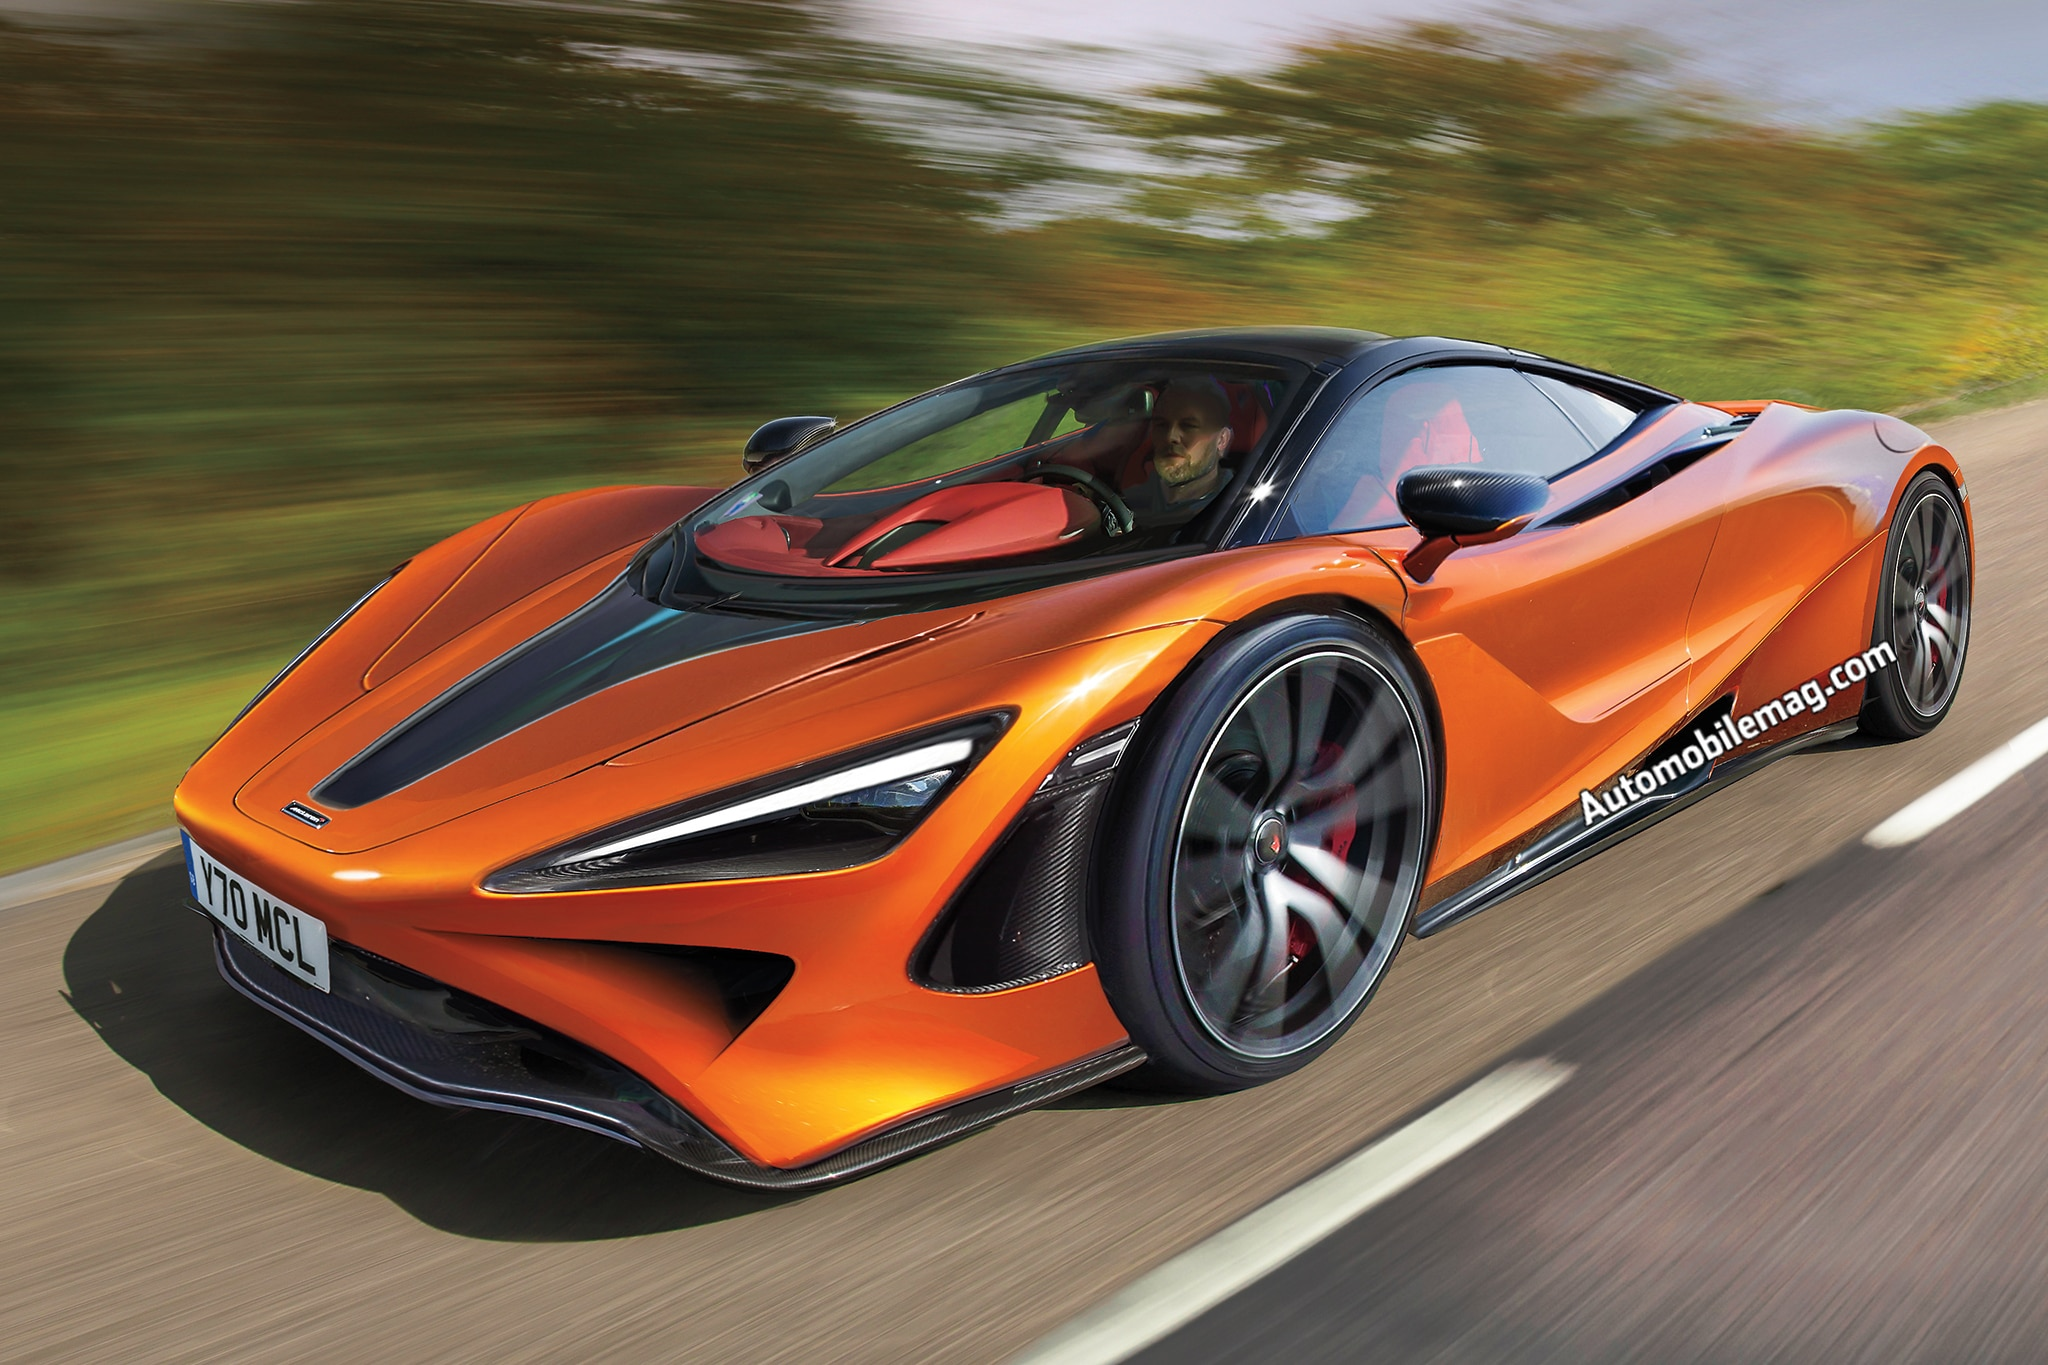 Mclaren Speedtail Is The Name Of Marque S Upcoming Three Seat Hyper Gt Car Automobile Magazine